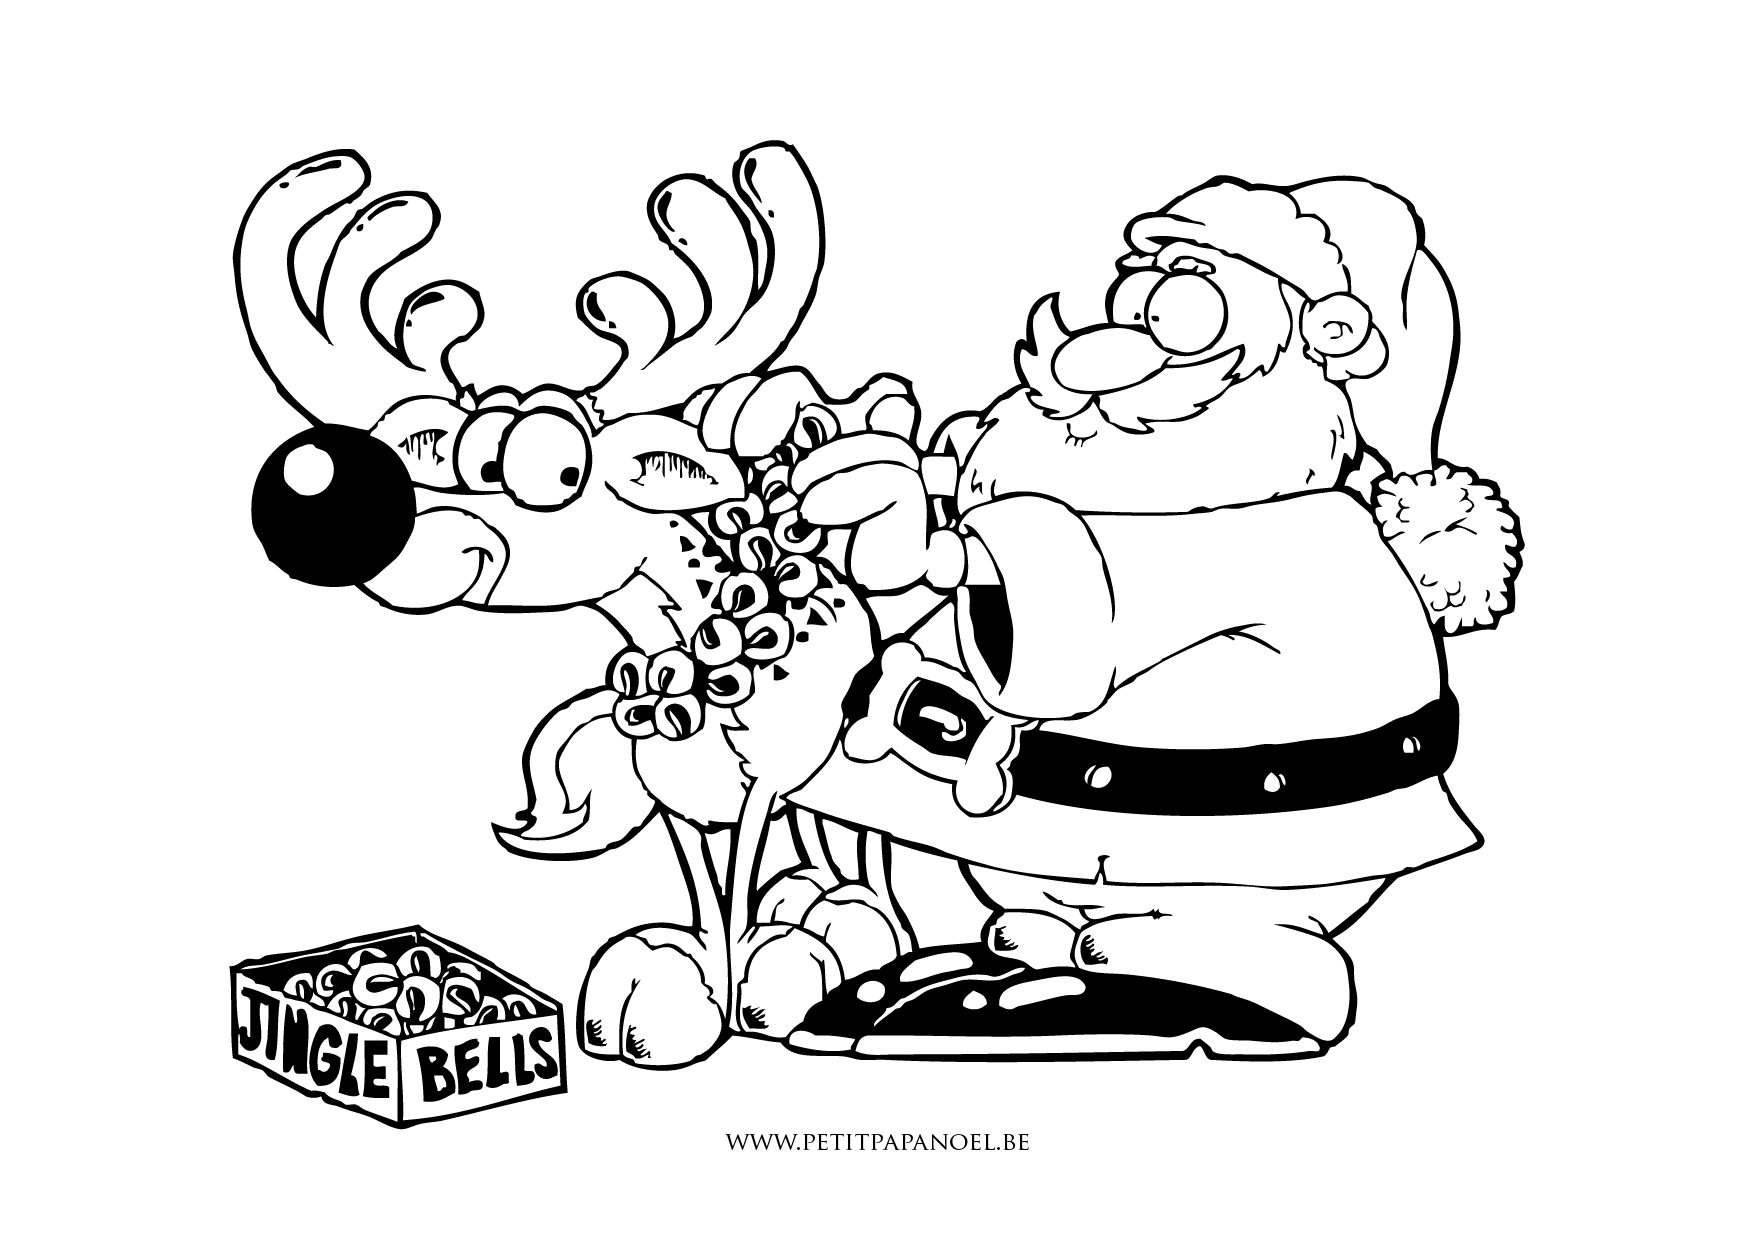 coloriage noel sur hugo l'escargot